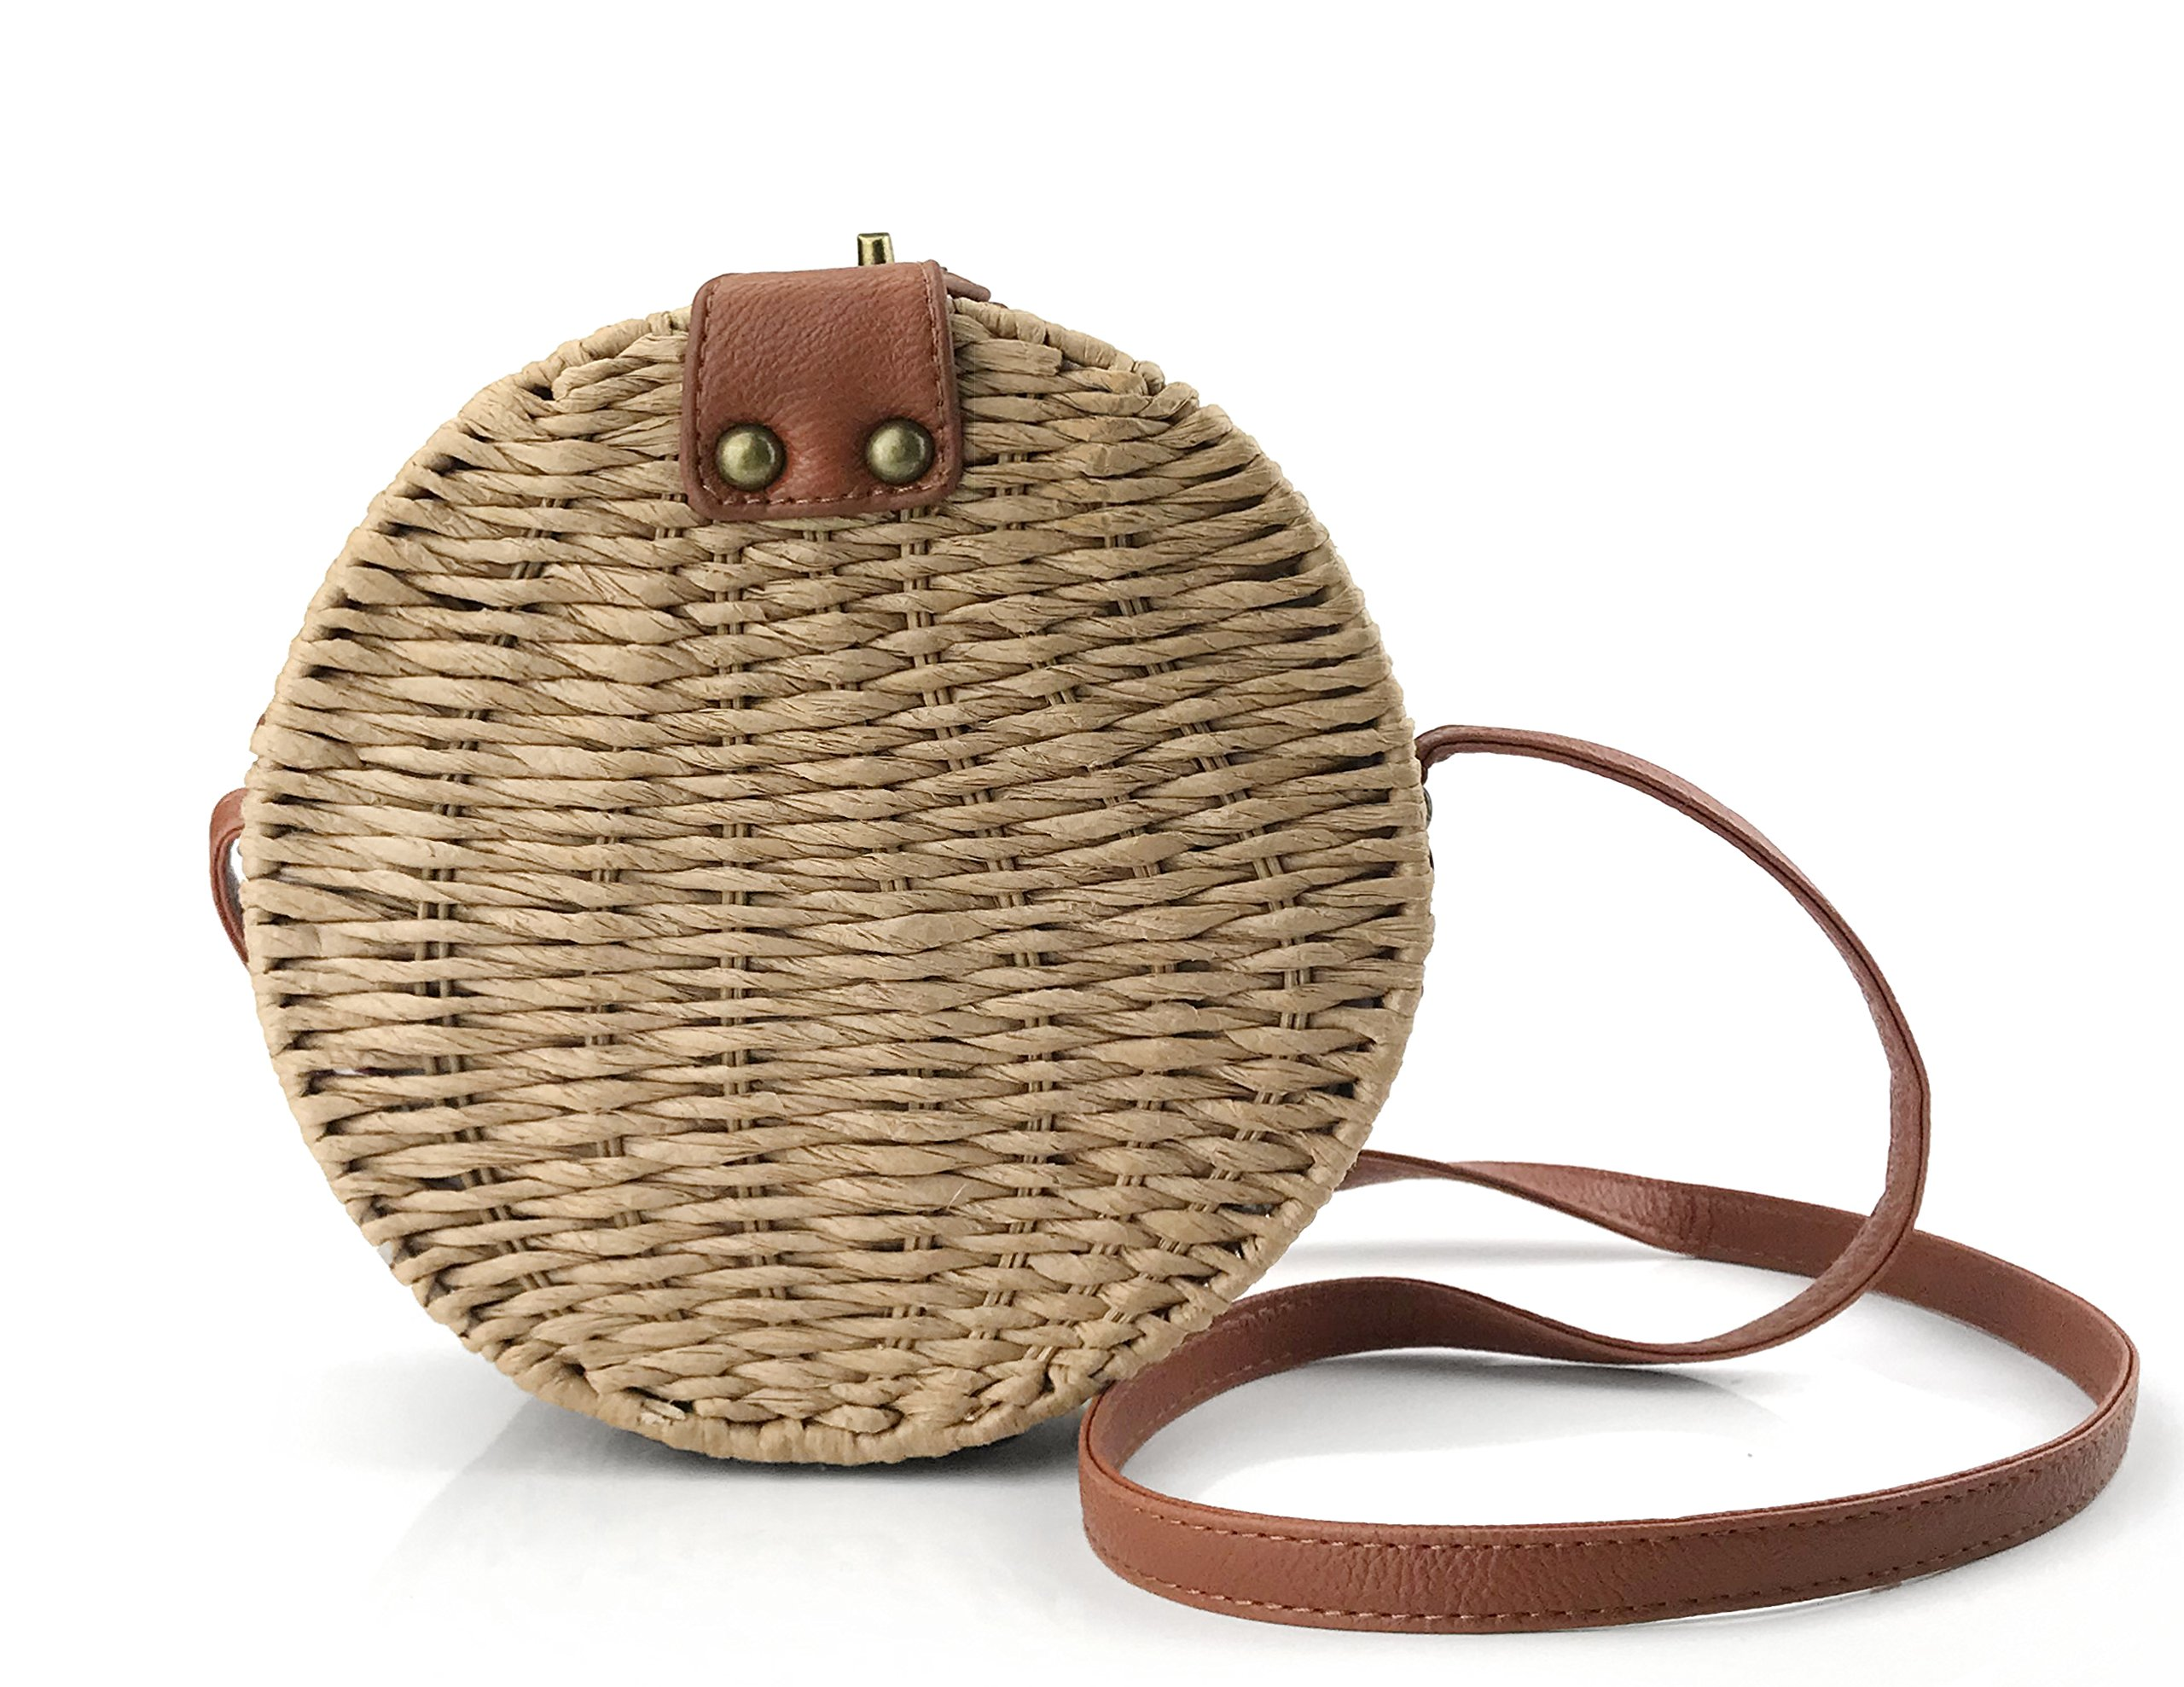 Round Straw Handwoven Shoulder Bag Women Cross body Bag for Summer Holiday (Brown)